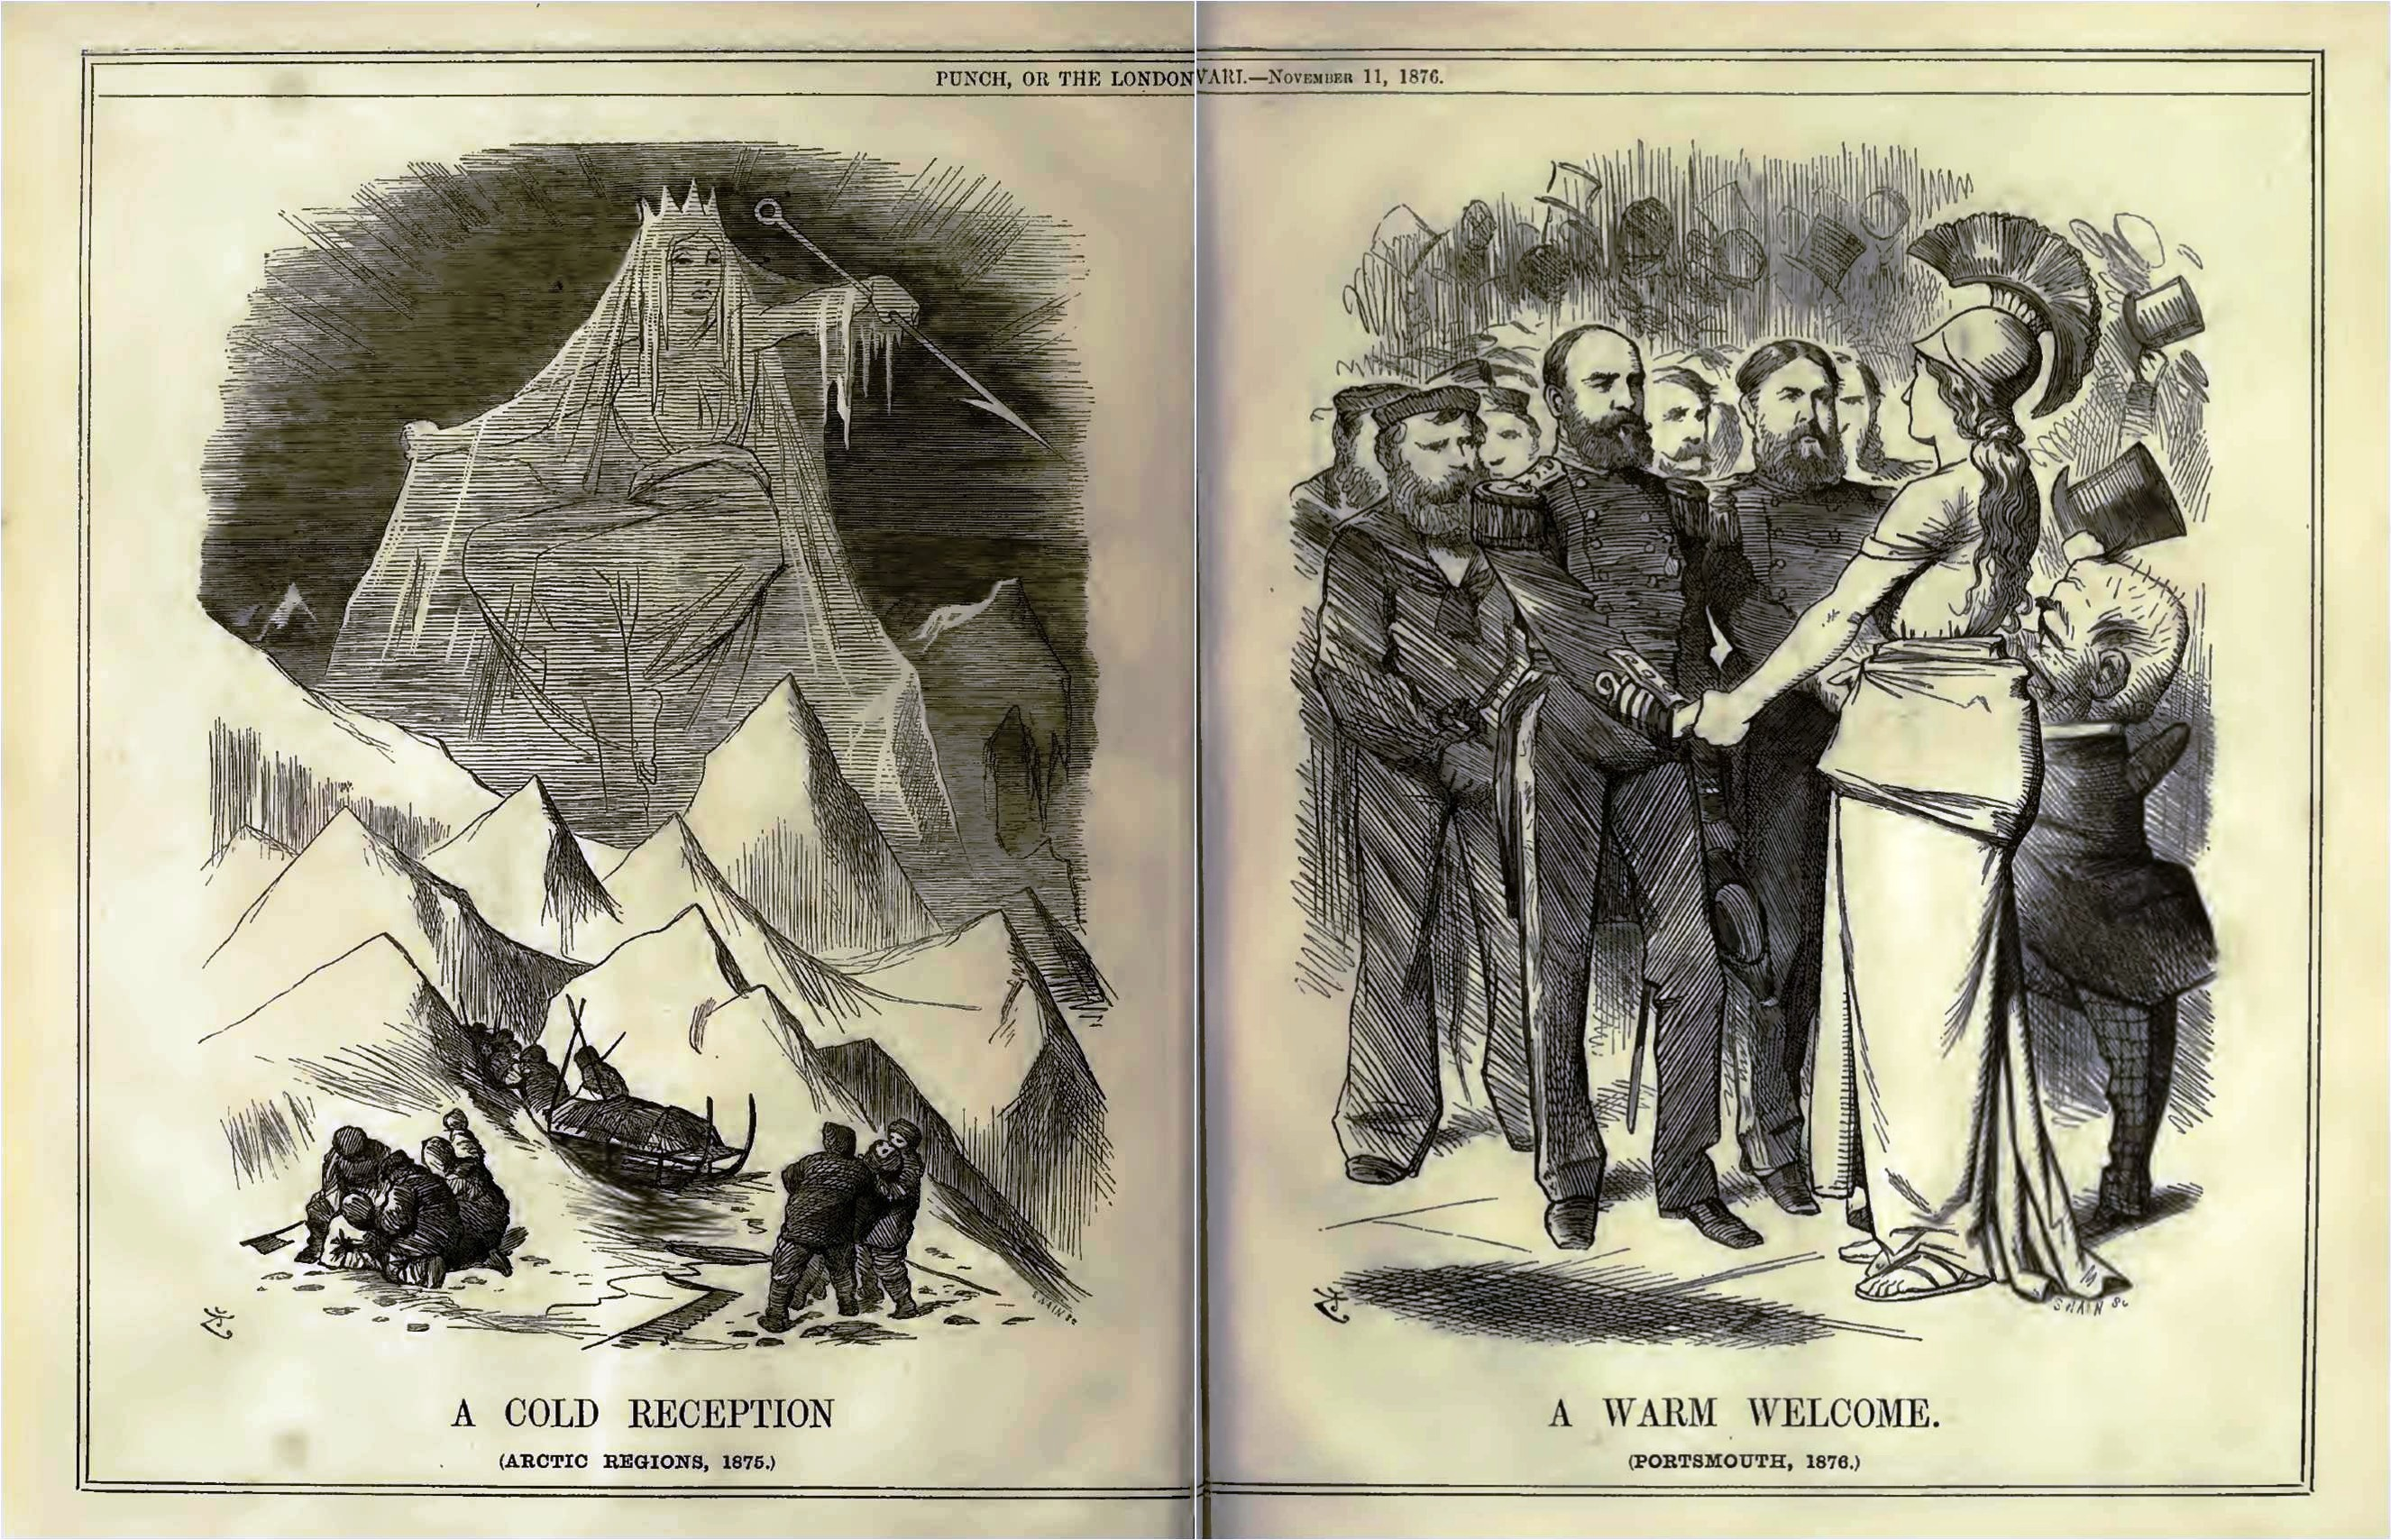 """A Cold Reception"" and ""A Warm Welcome"". Source: Punch, or the London Charivari, 71 (1876)."